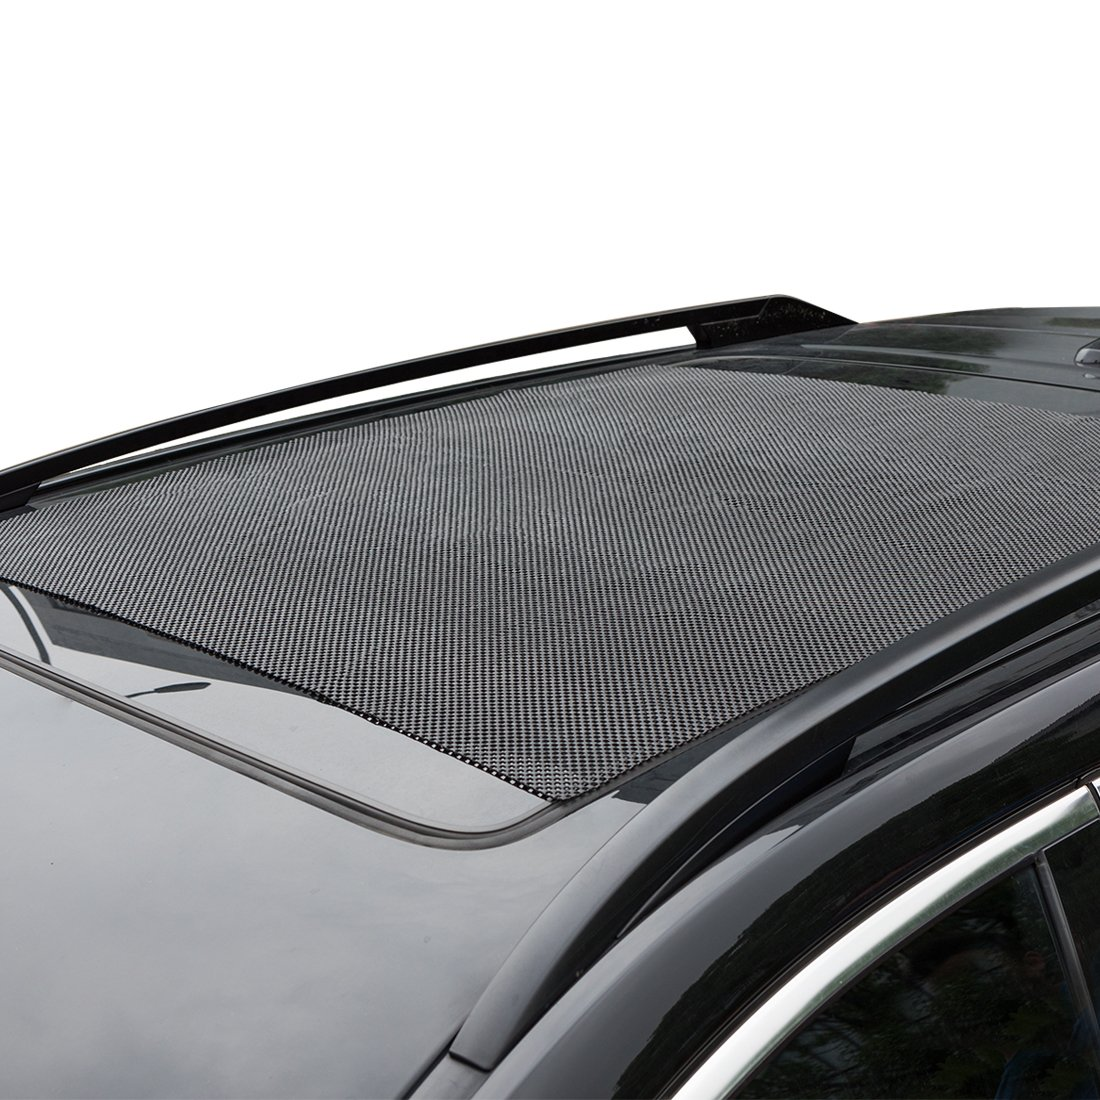 CZC AUTO Car Roof Cargo Carrier Bag Protective Mat Non Slip SUV Rooftop Luggage Rack Pad Anti Skid Truck Bed Protector Universal Work with Vehicle Roof Top Storage Box Crossbar Rack Basket 39x36